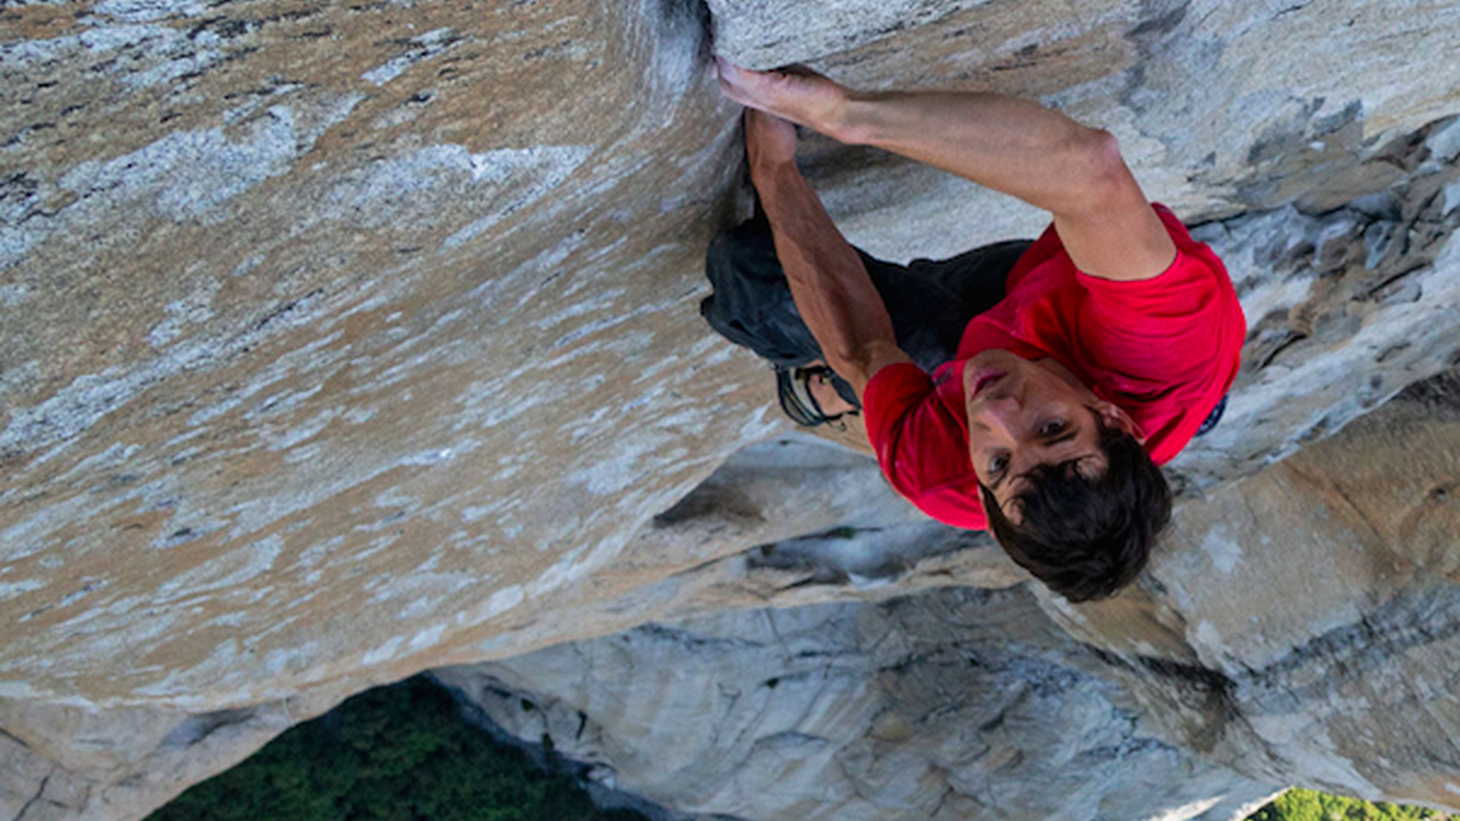 Will the cameras kill Alex Honnold on his free solo climb of El Cap?